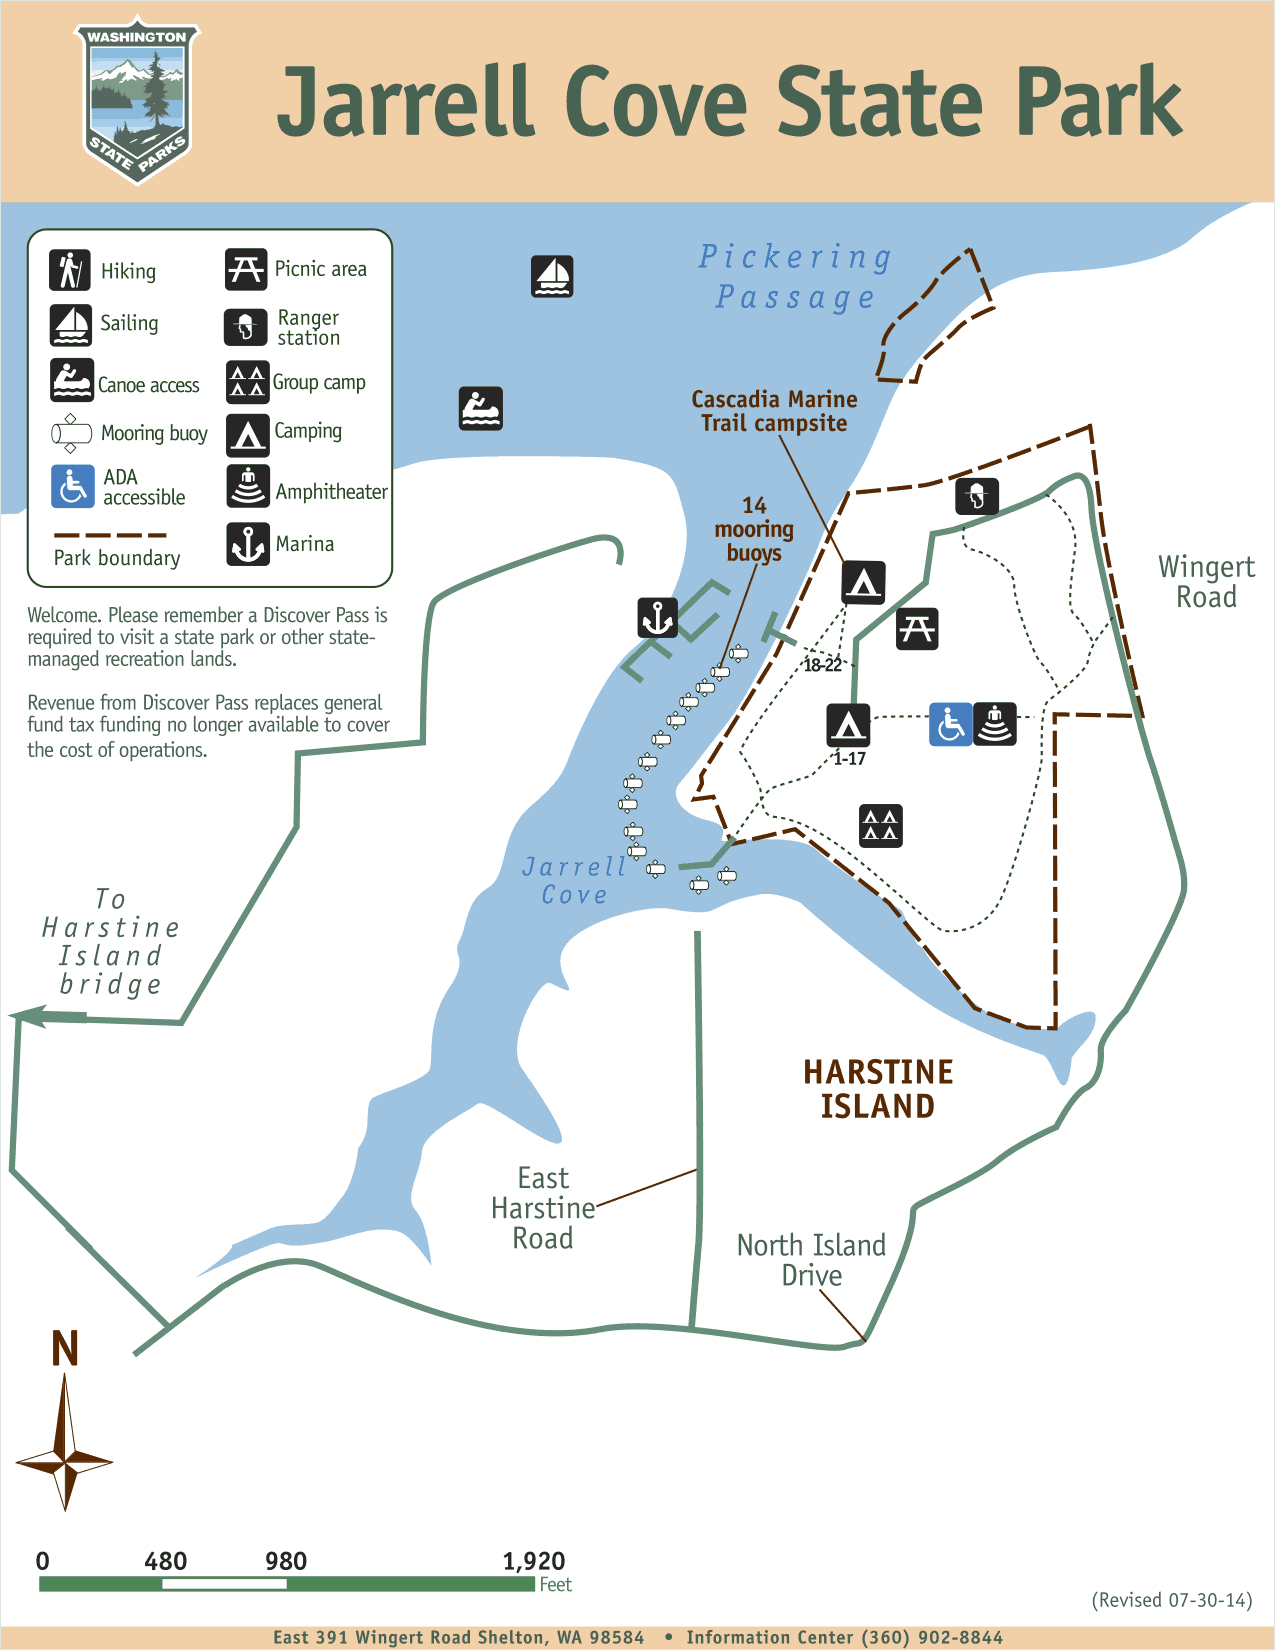 Jarrell Cove State Park map (courtesy Washington State Parks)